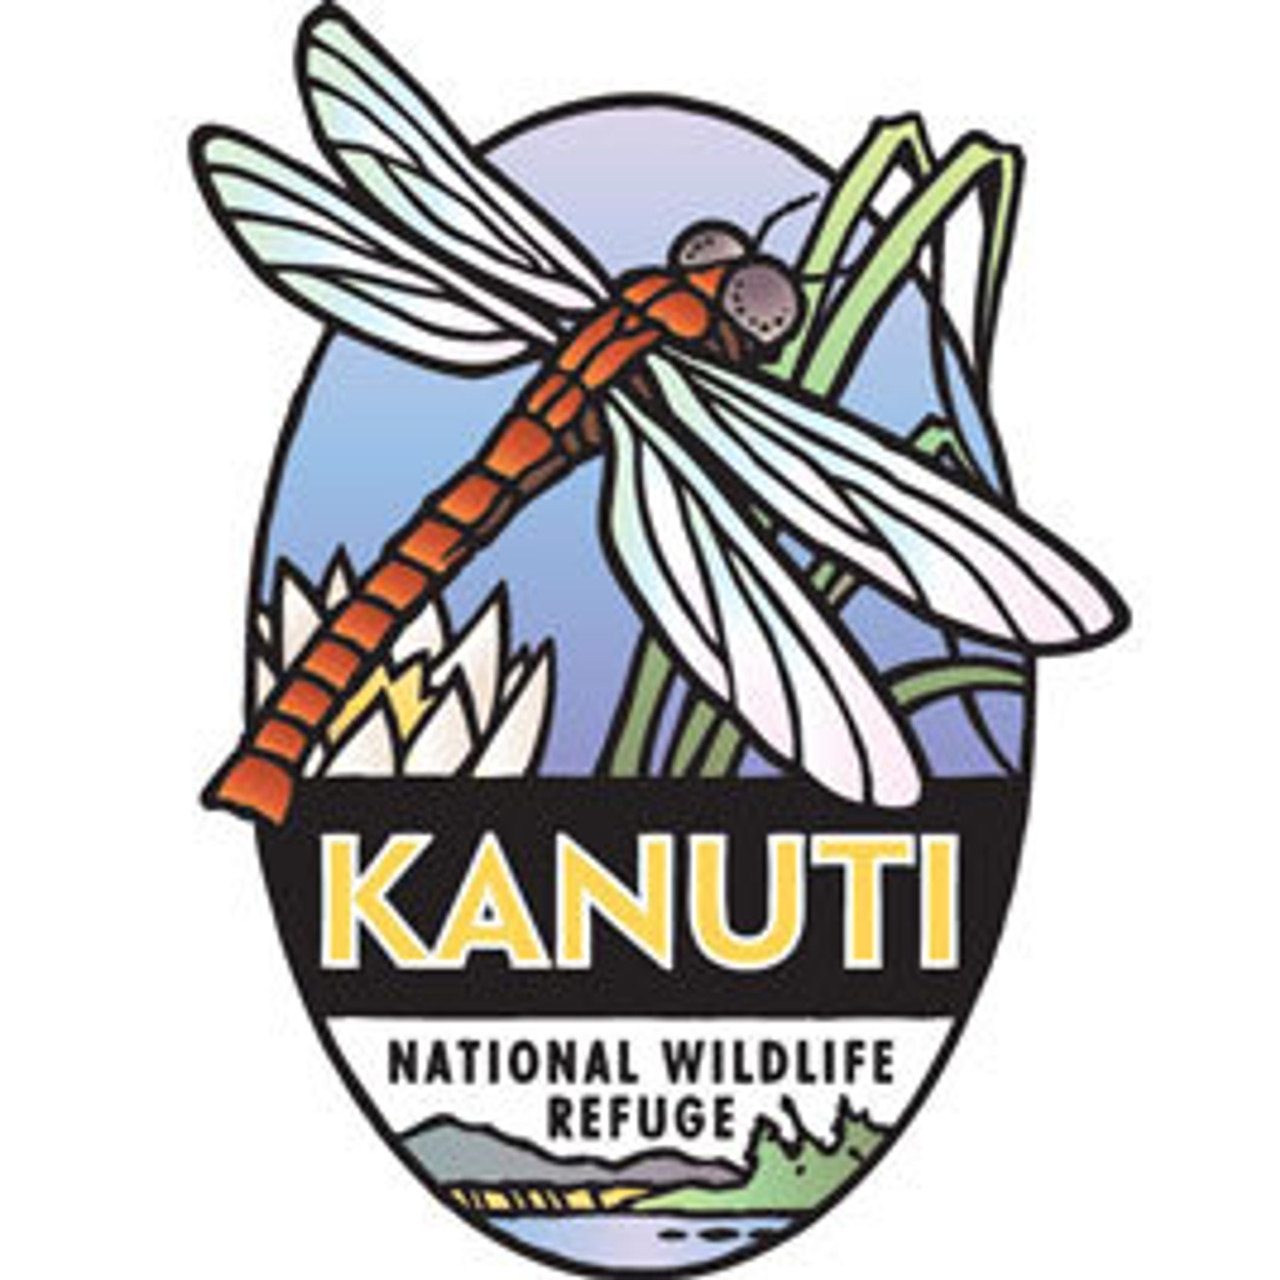 Kanuti National Wildlife Refuge